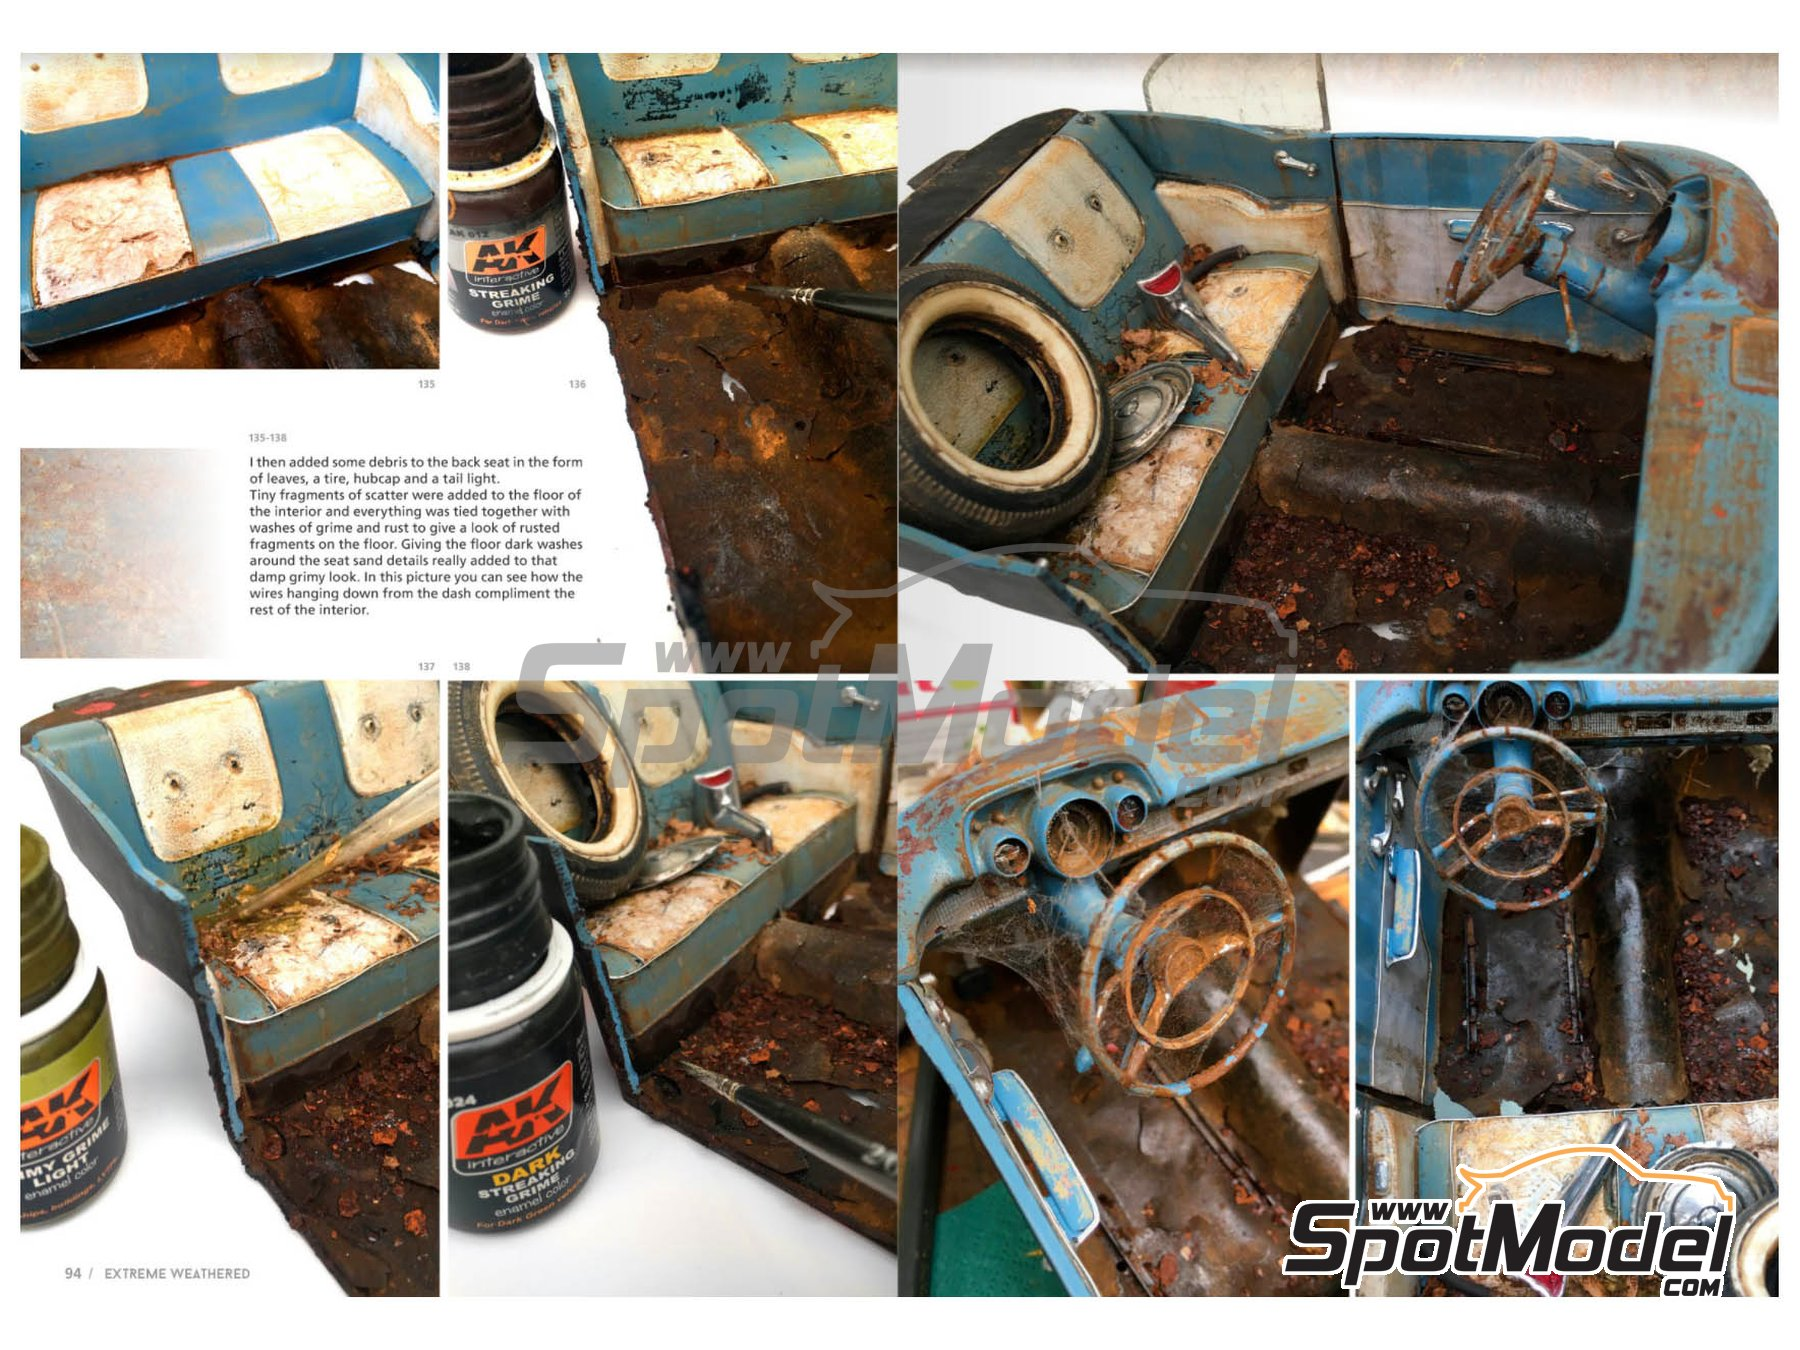 Image 4: Extreme Reality 3 -Weathered vehicles and environments | Book manufactured by AK Interactive (ref. AK-510)